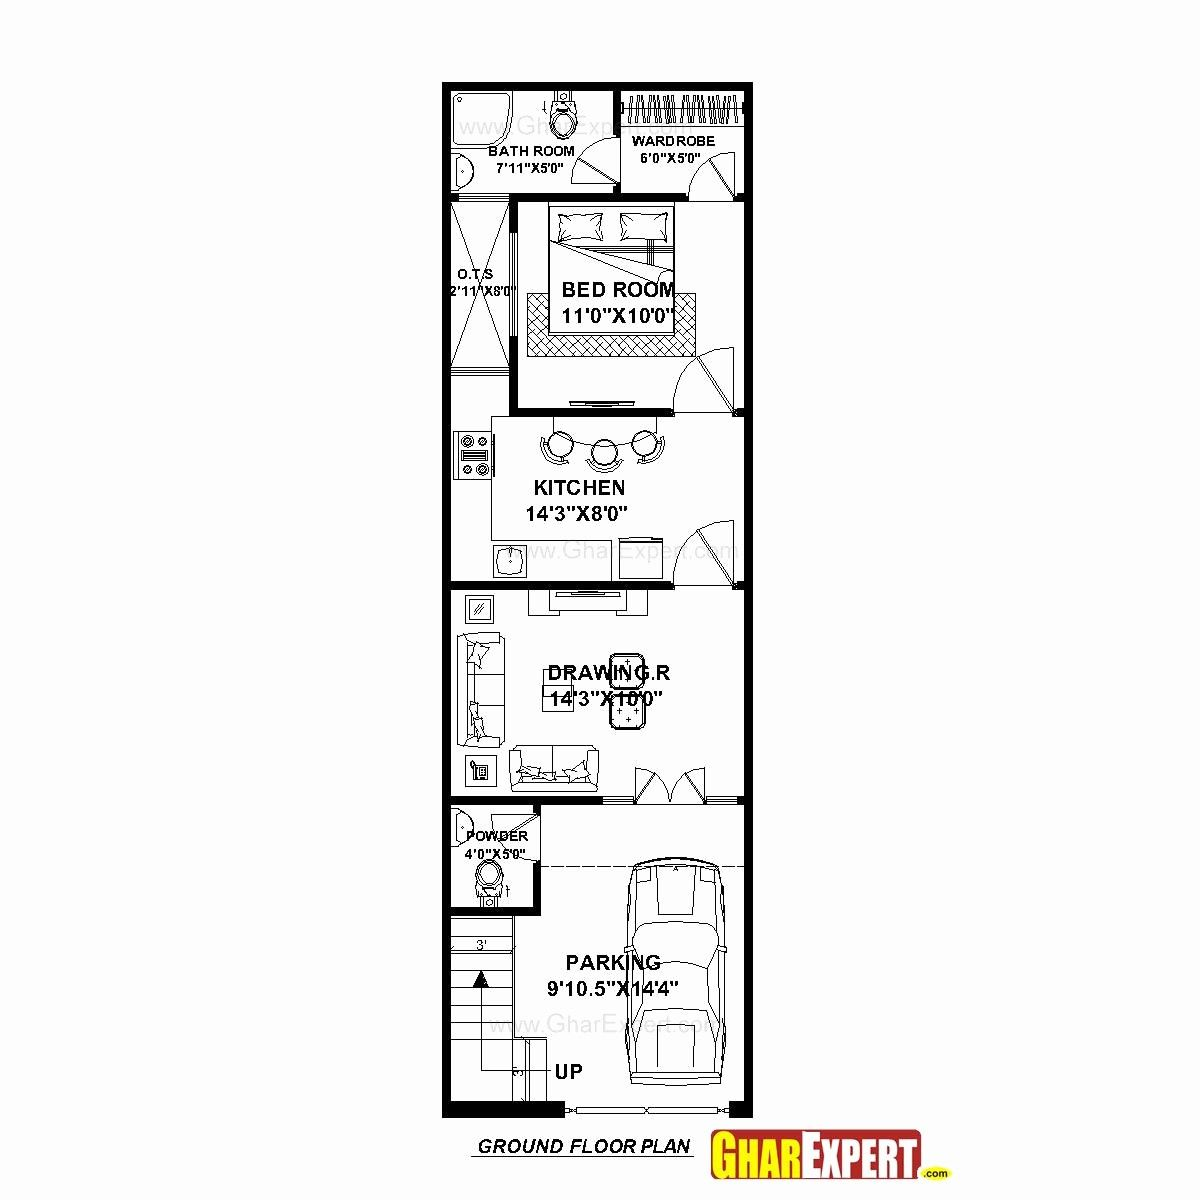 Pin on 1  X Home Floor Plans on 30 x 50 floor plans, 50 x 70 floor plans, 50 x 50 floor plans, 40 x 50 floor plans, 20 by 50 house plans, 50 x 60 floor plans, 20 x 50 floor plans,